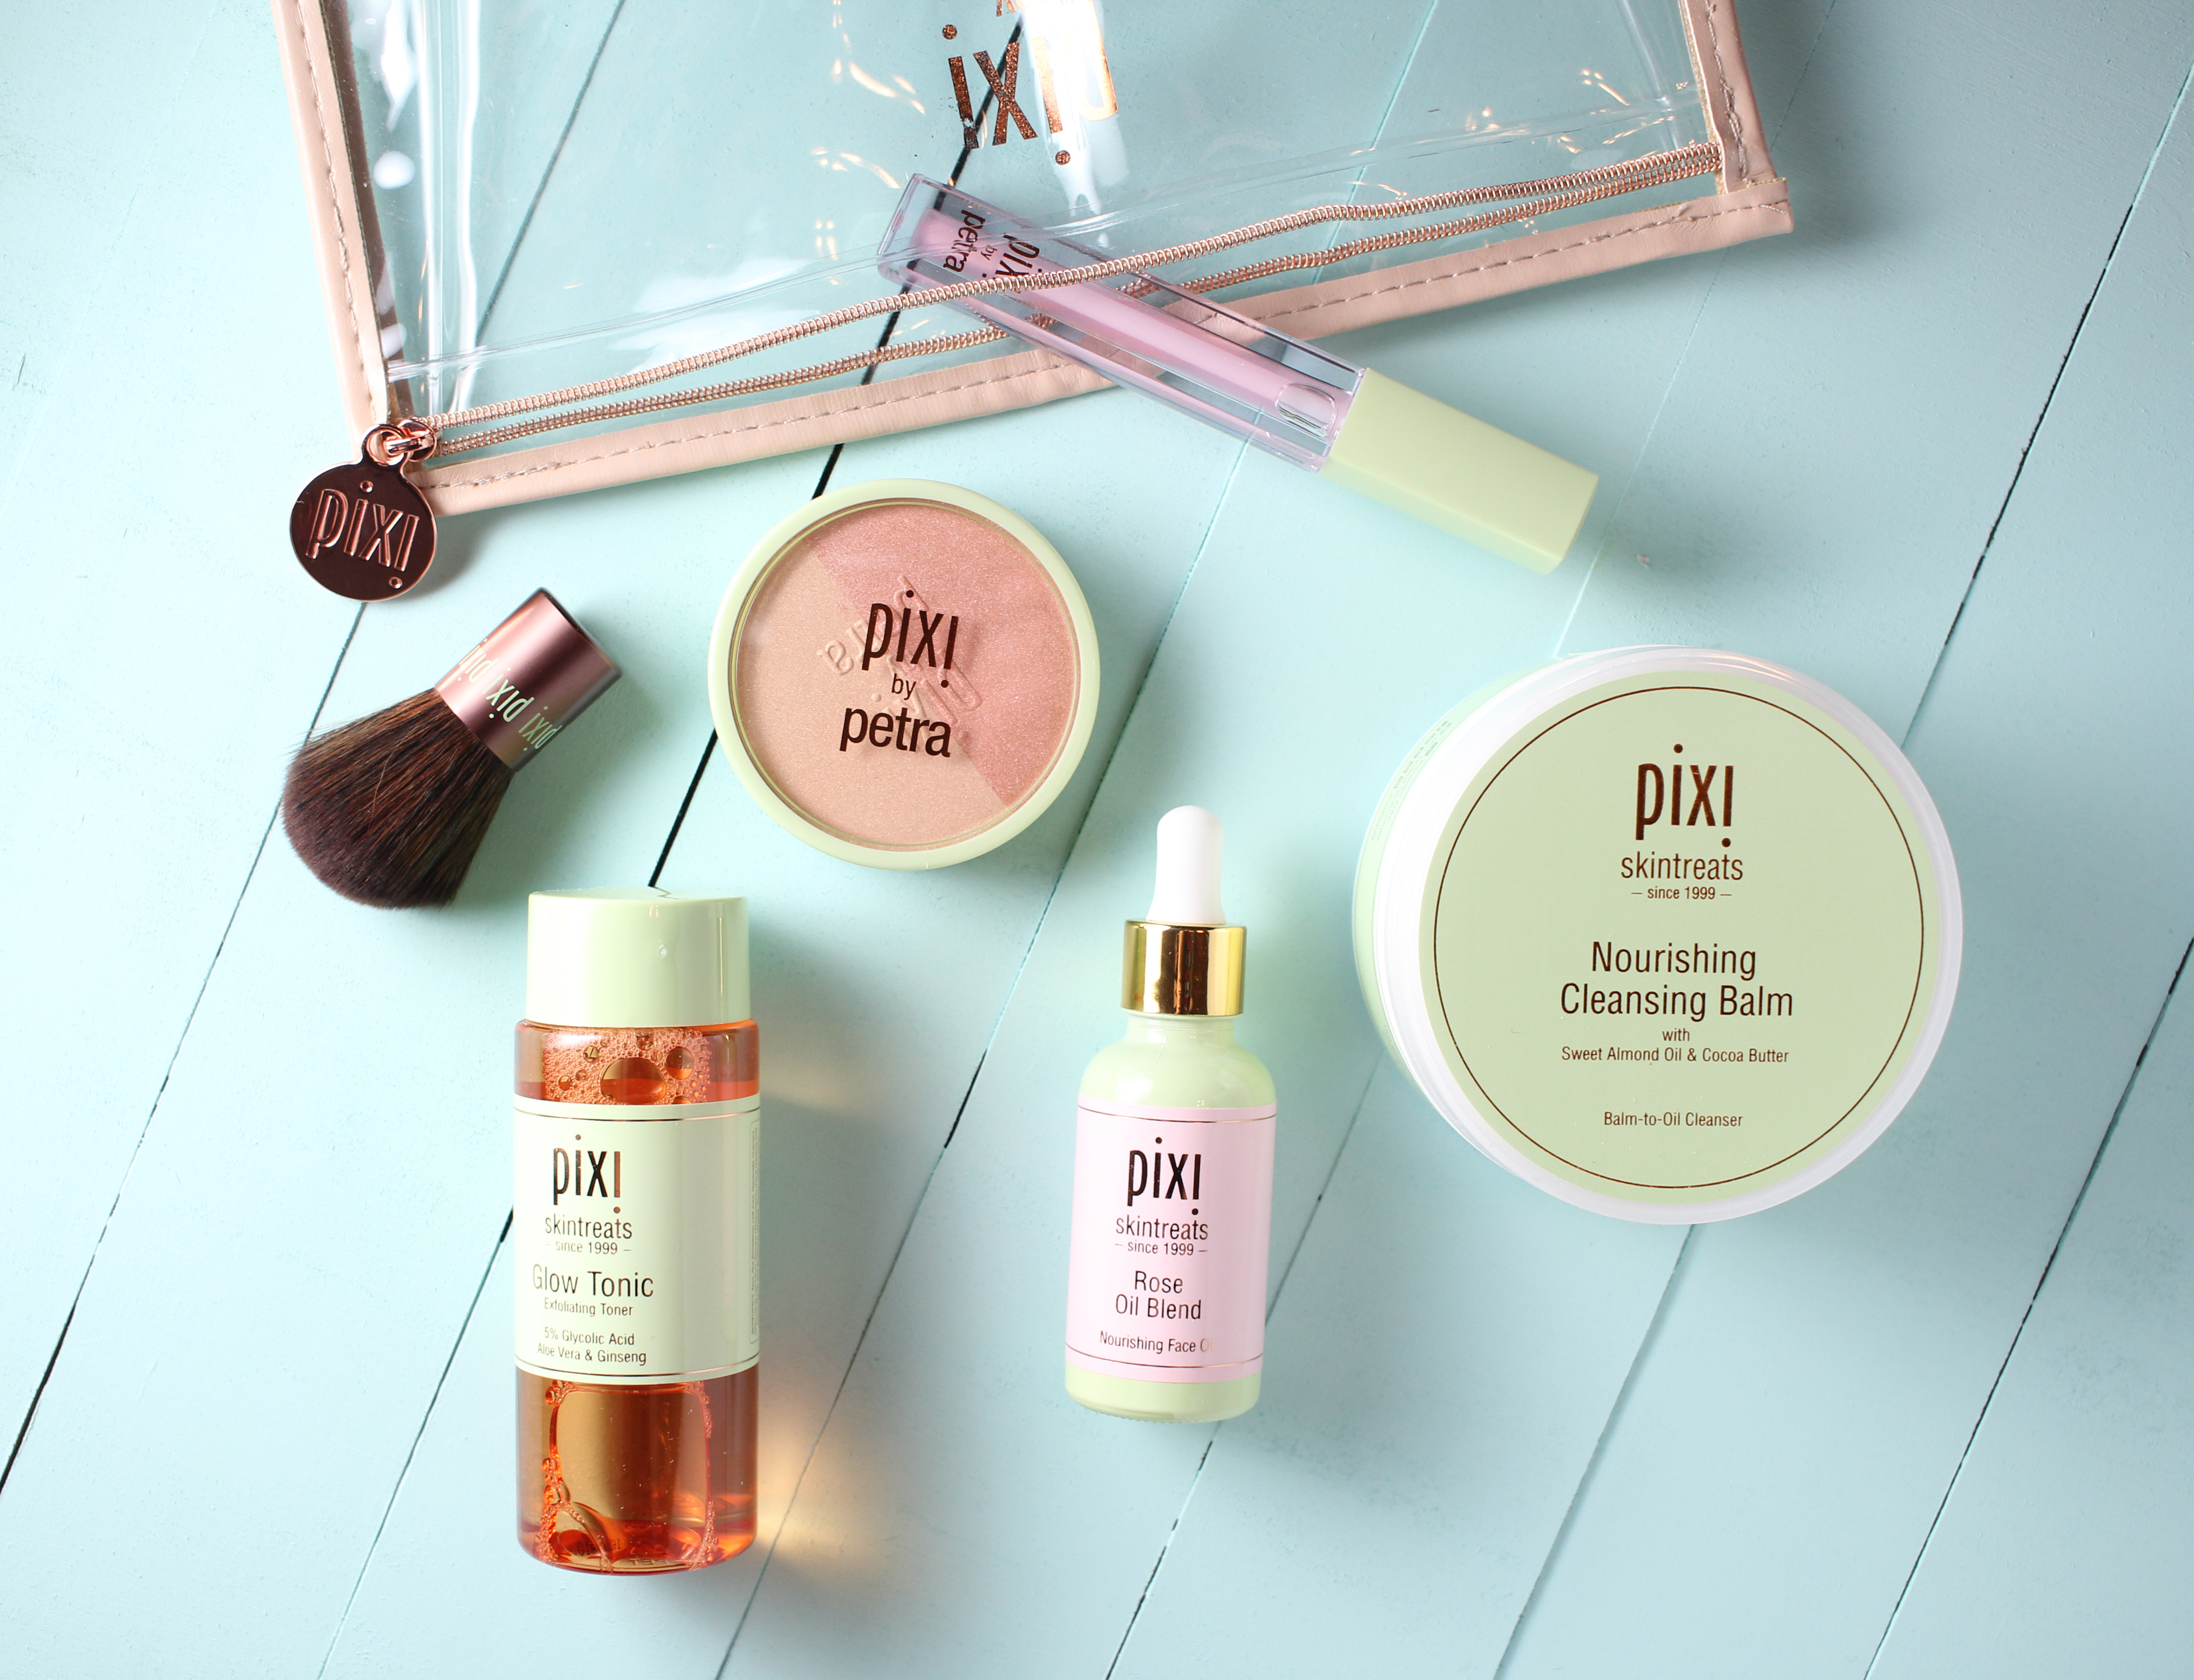 pixi-by-petra-review